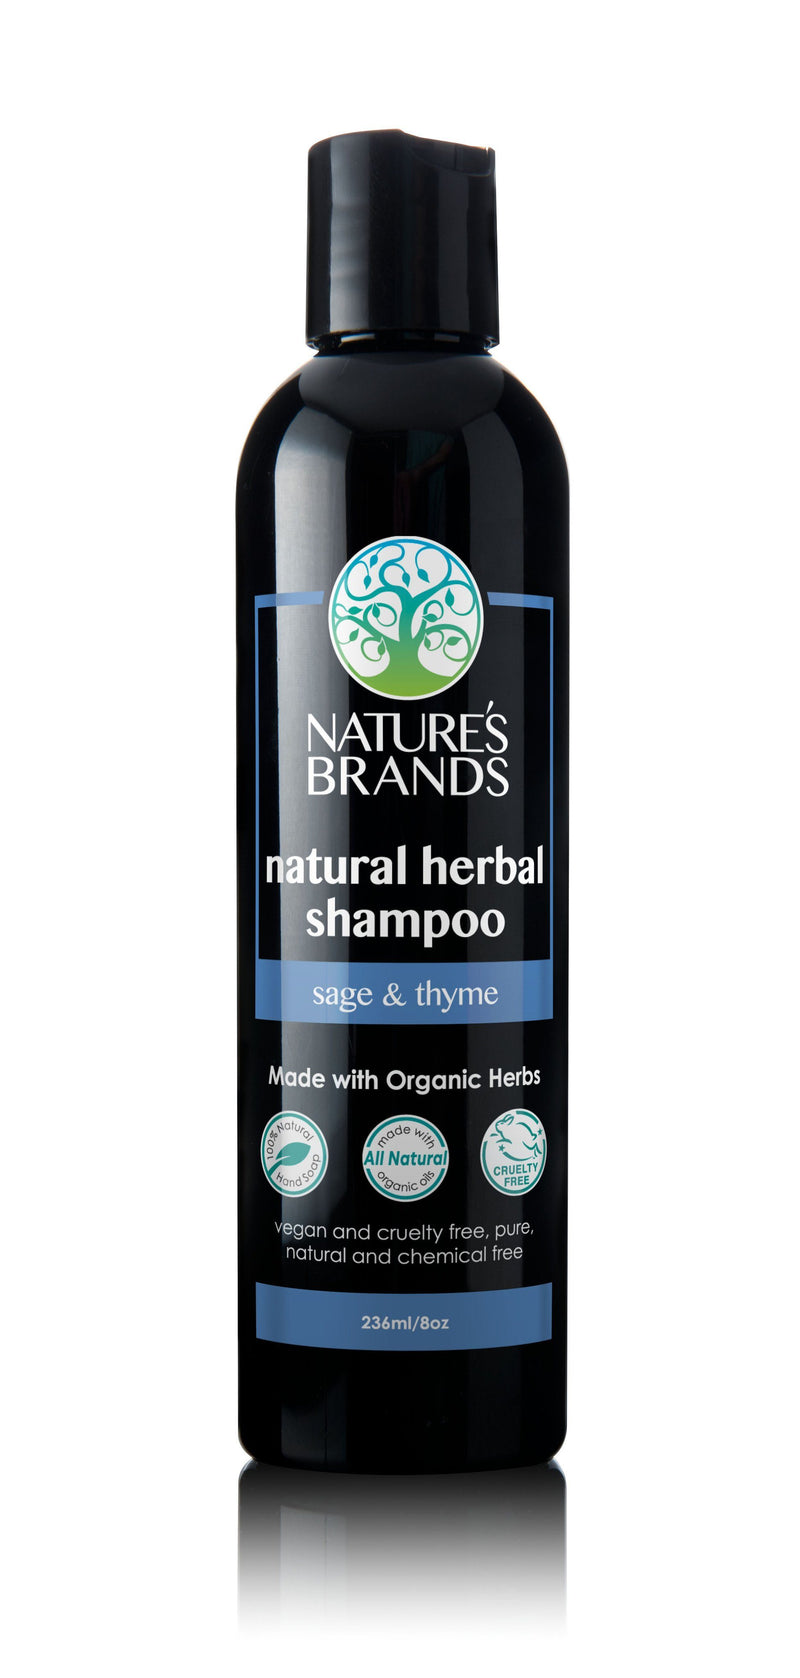 Herbal Choice Mari Natural Shampoo, Sage And Thyme; Made with Organic - Herbal Choice Mari Natural Shampoo, Sage And Thyme; Made with Organic - 8floz